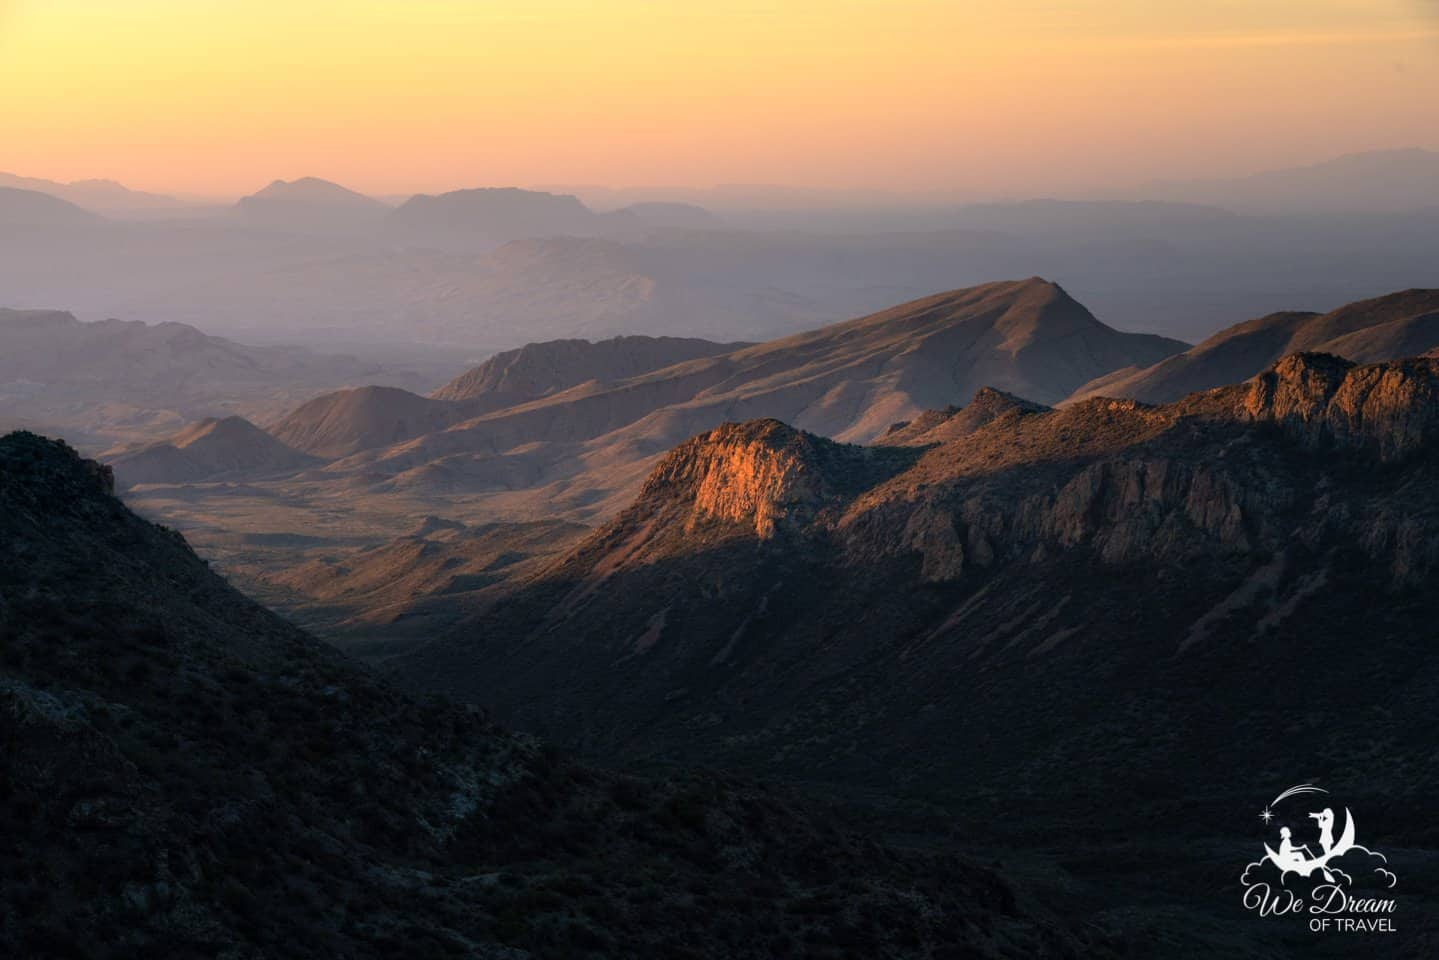 First light shines on the Chisos Basin in this sunrise picture from Big Bend National Park.